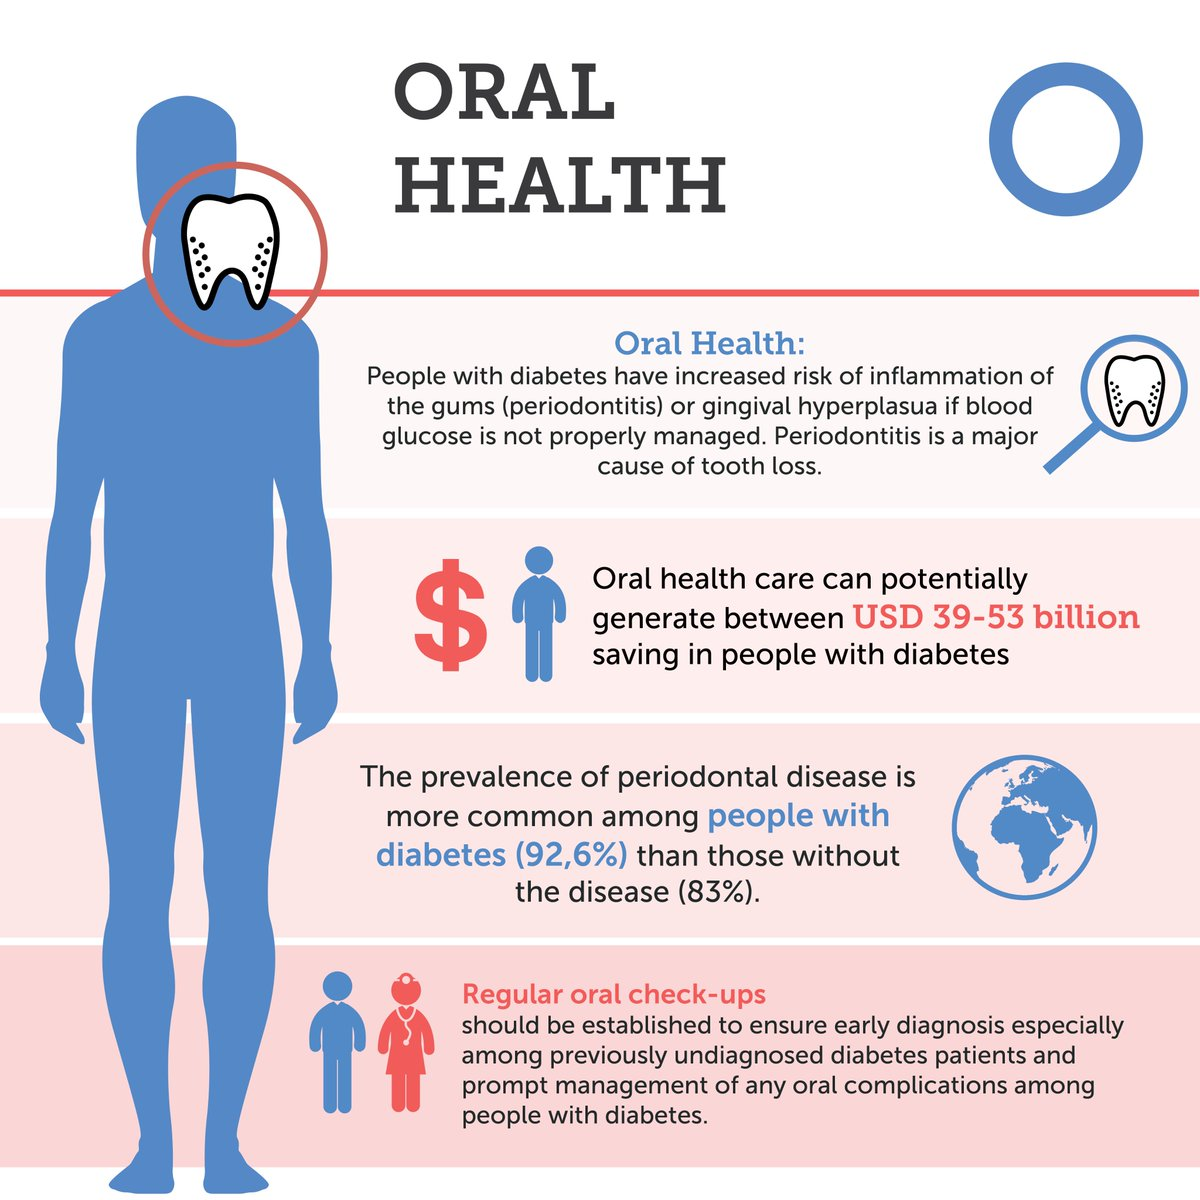 test Twitter Media - Infection of a gum is a complication of #diabetes, and is  more common in people affected when blood glucose control is poor. This #WorldOralHealthDay, learn more about the importance of good oral health for a healthy life with diabetes: https://t.co/1MJqkcMo8u https://t.co/86f5KmZwhM